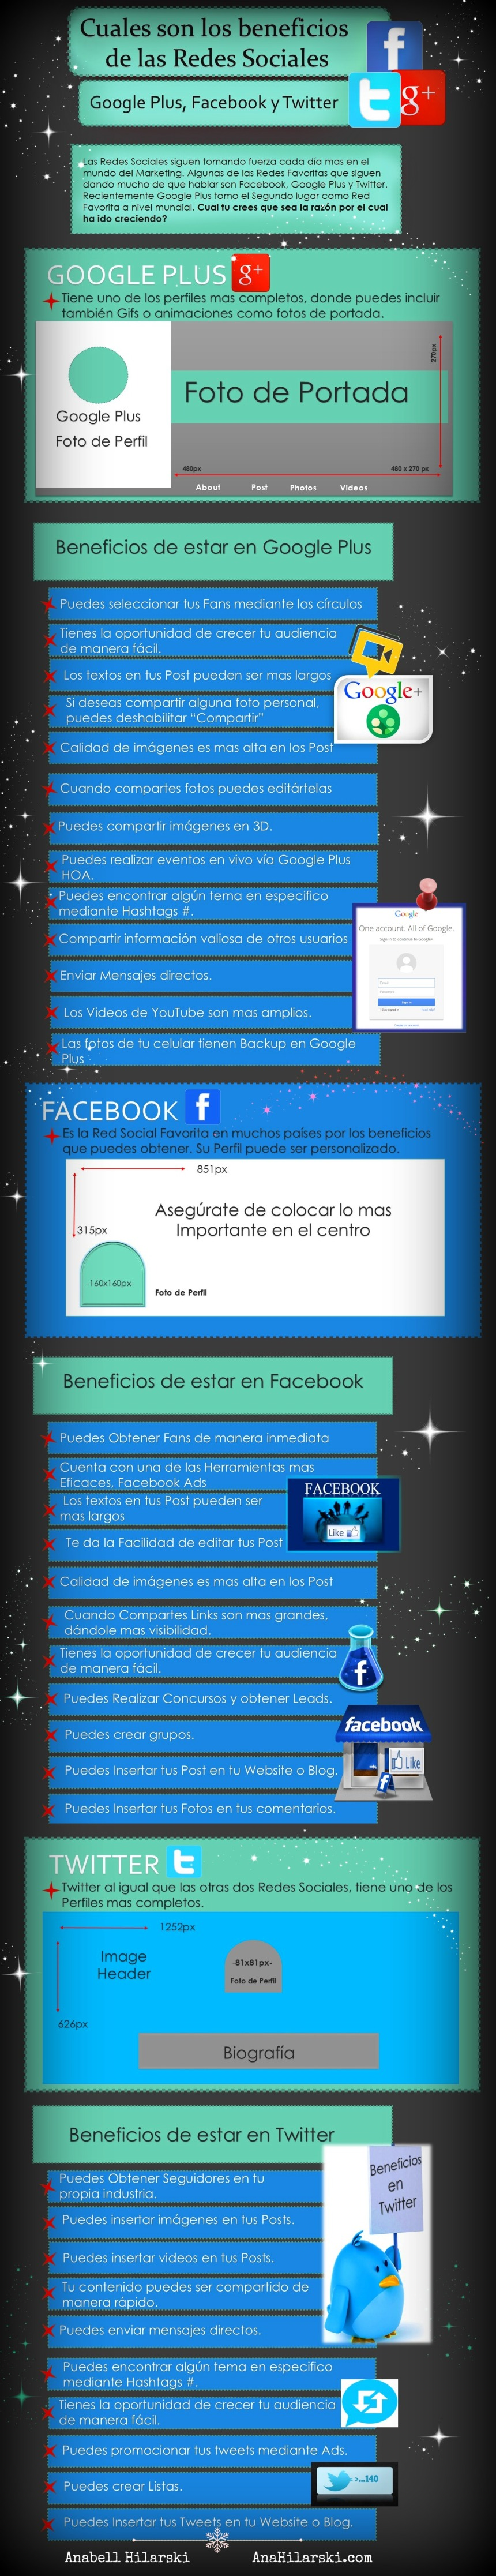 Beneficios de estar en Twitter - FaceBook y Google +